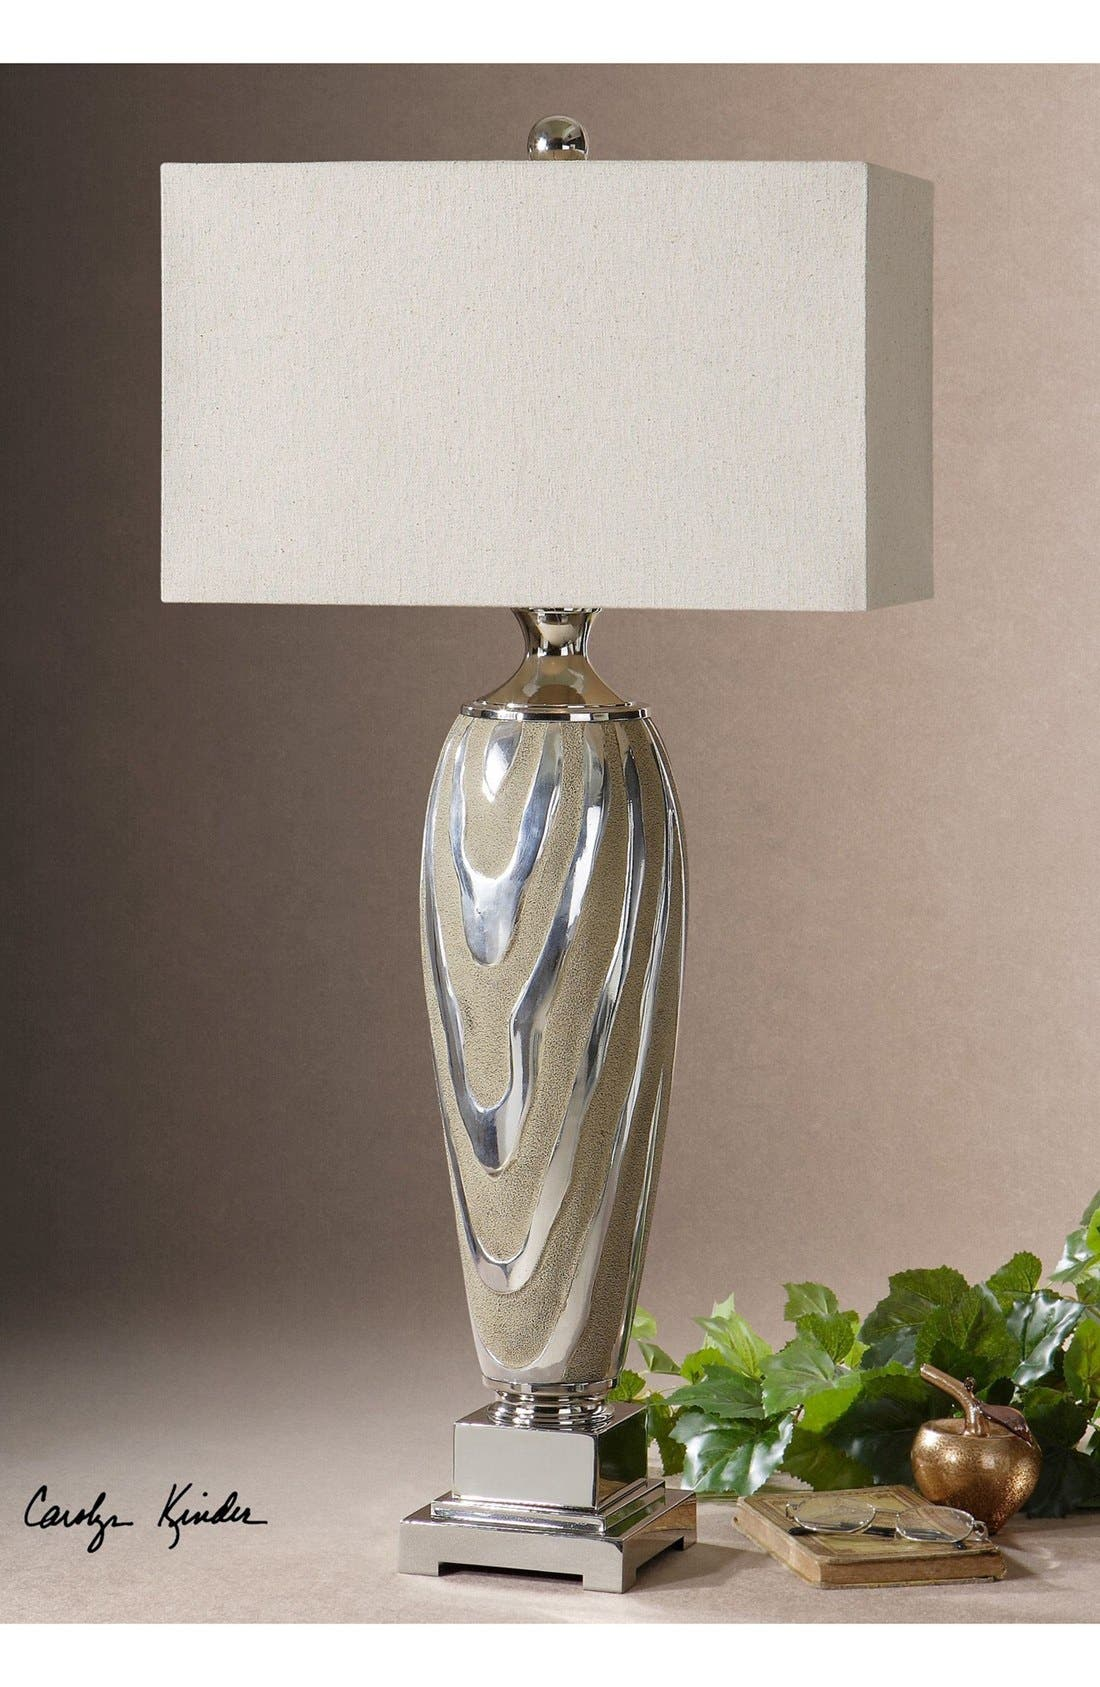 'Allegheny' Ceramic Table Lamp,                             Alternate thumbnail 2, color,                             020